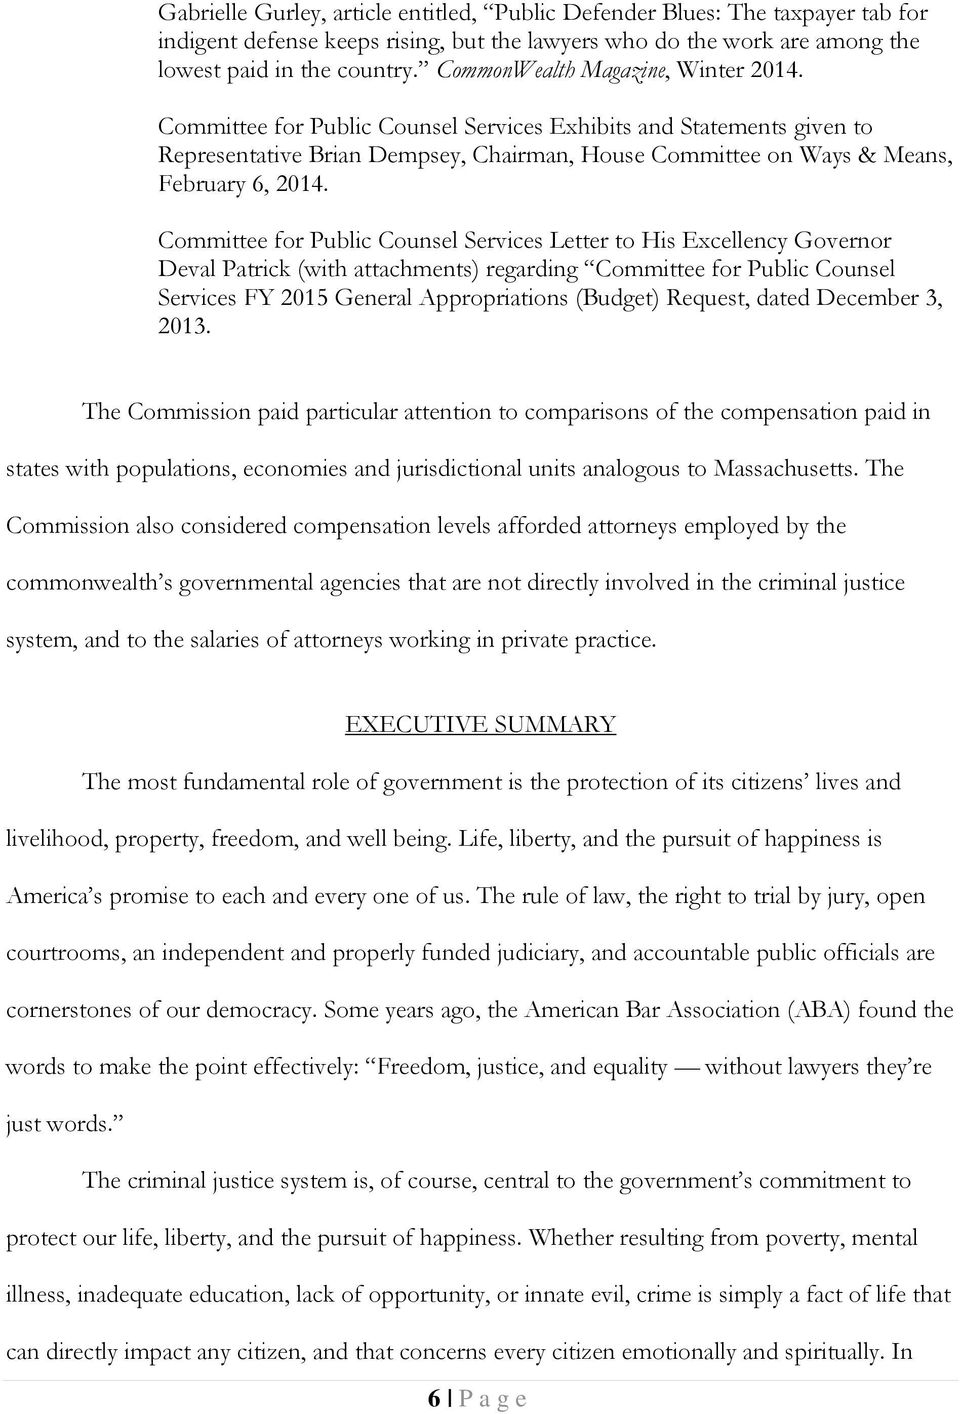 Committee for Public Counsel Services Letter to His Excellency Governor Deval Patrick (with attachments) regarding Committee for Public Counsel Services FY 2015 General Appropriations (Budget)